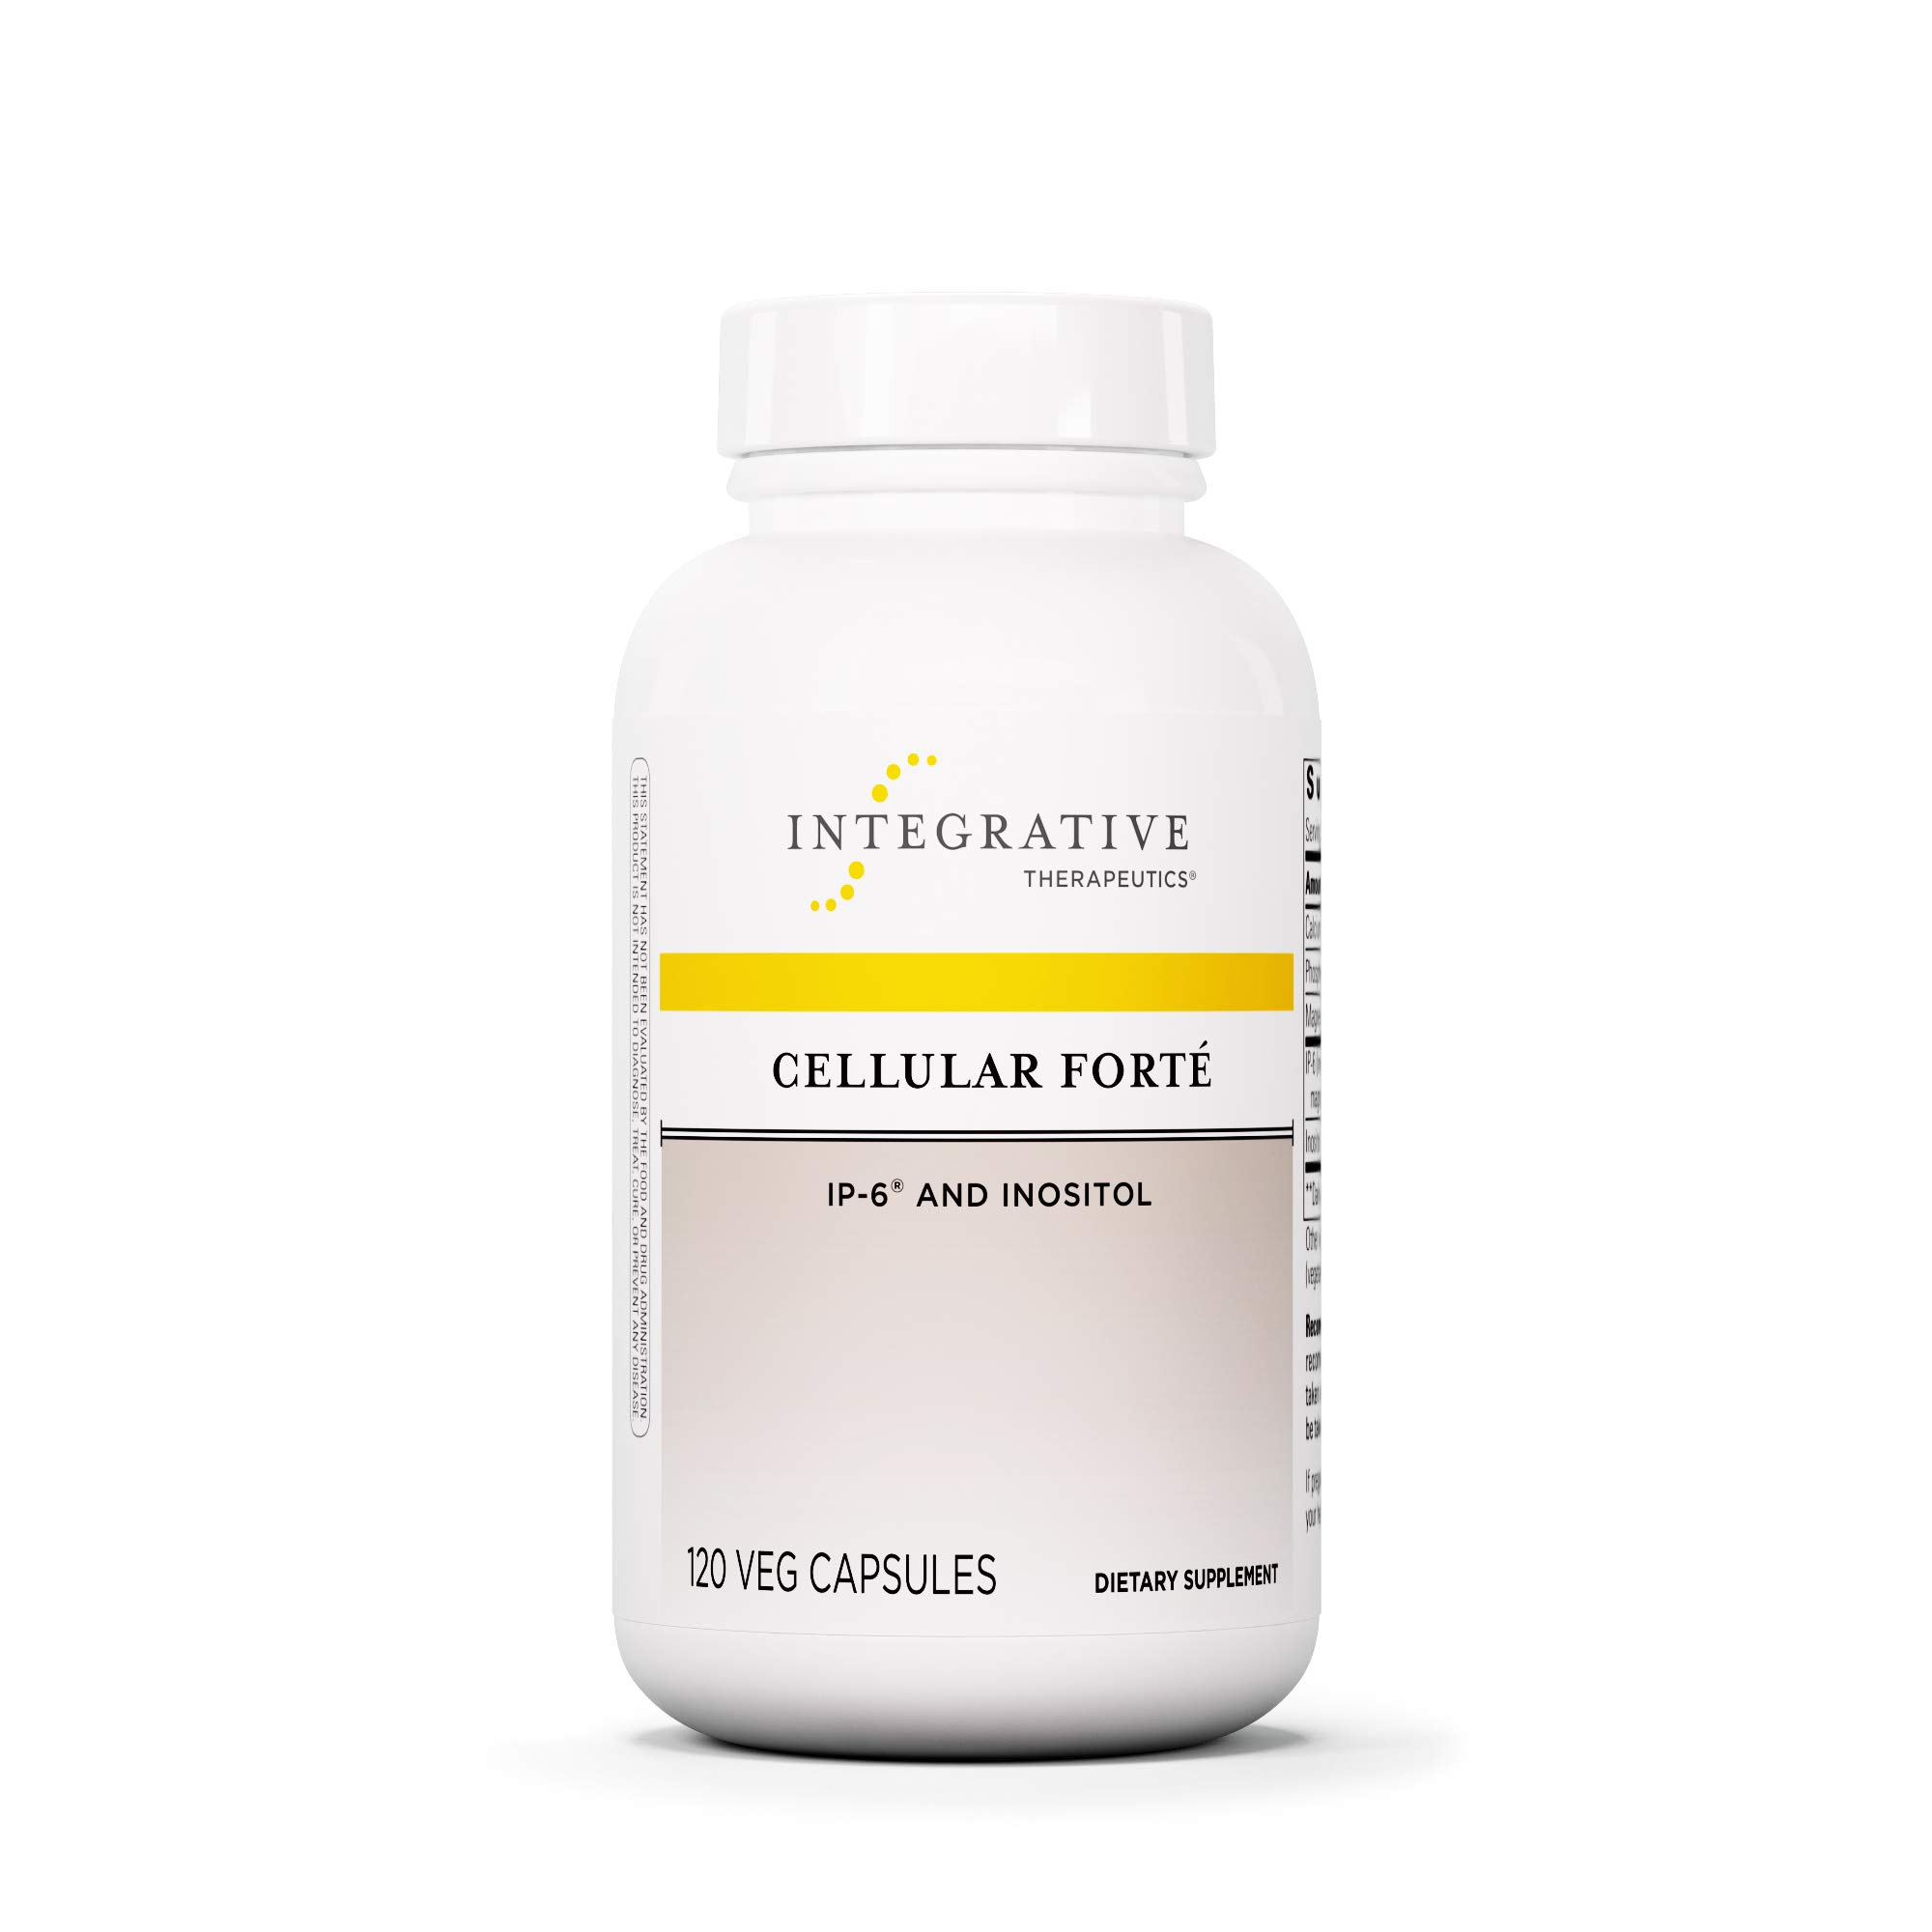 Integrative Therapeutics - Cellular Forte with IP-6 and Inosotol - Immune Support Supplement - 120 Capsules by Integrative Therapeutics